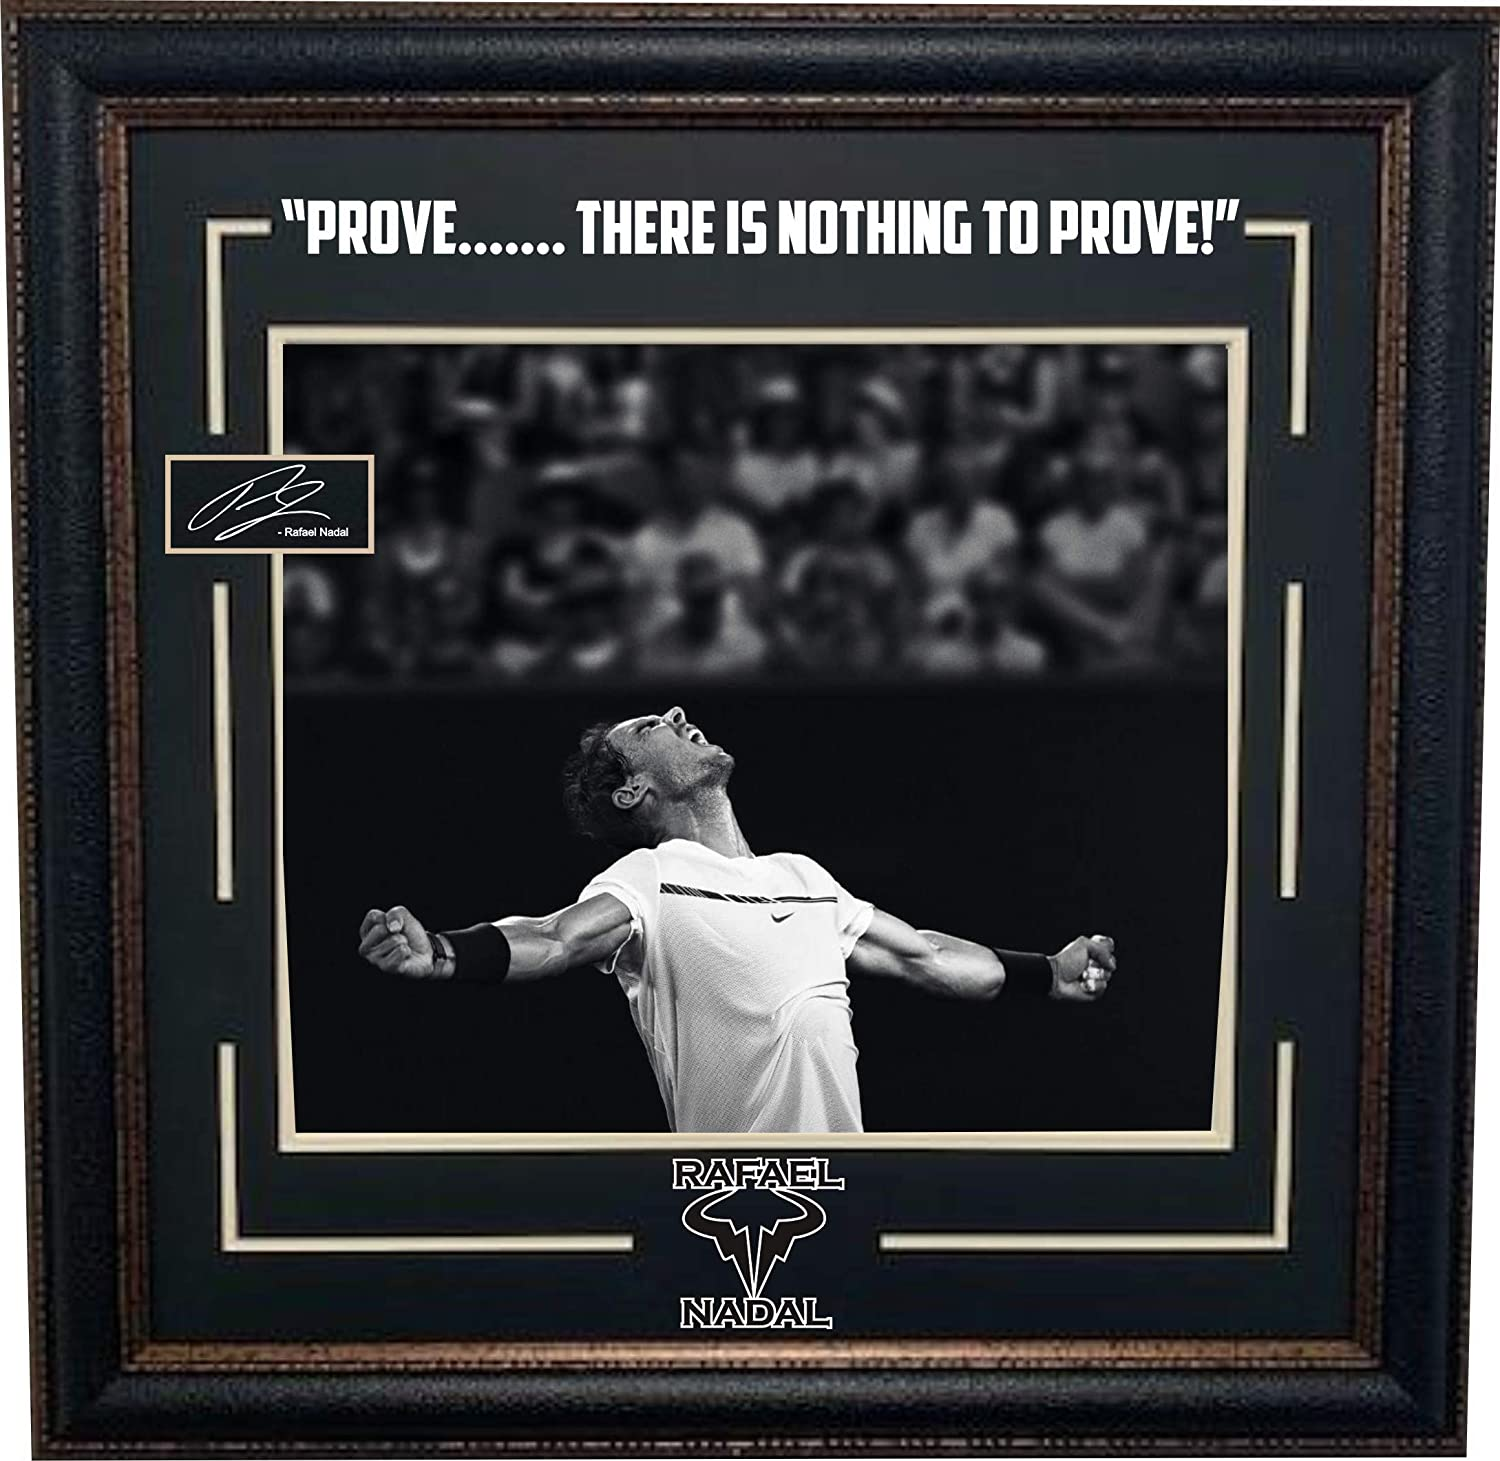 Rafael Nadal Framed Photo With Laser Signature At Amazon S Sports Collectibles Store